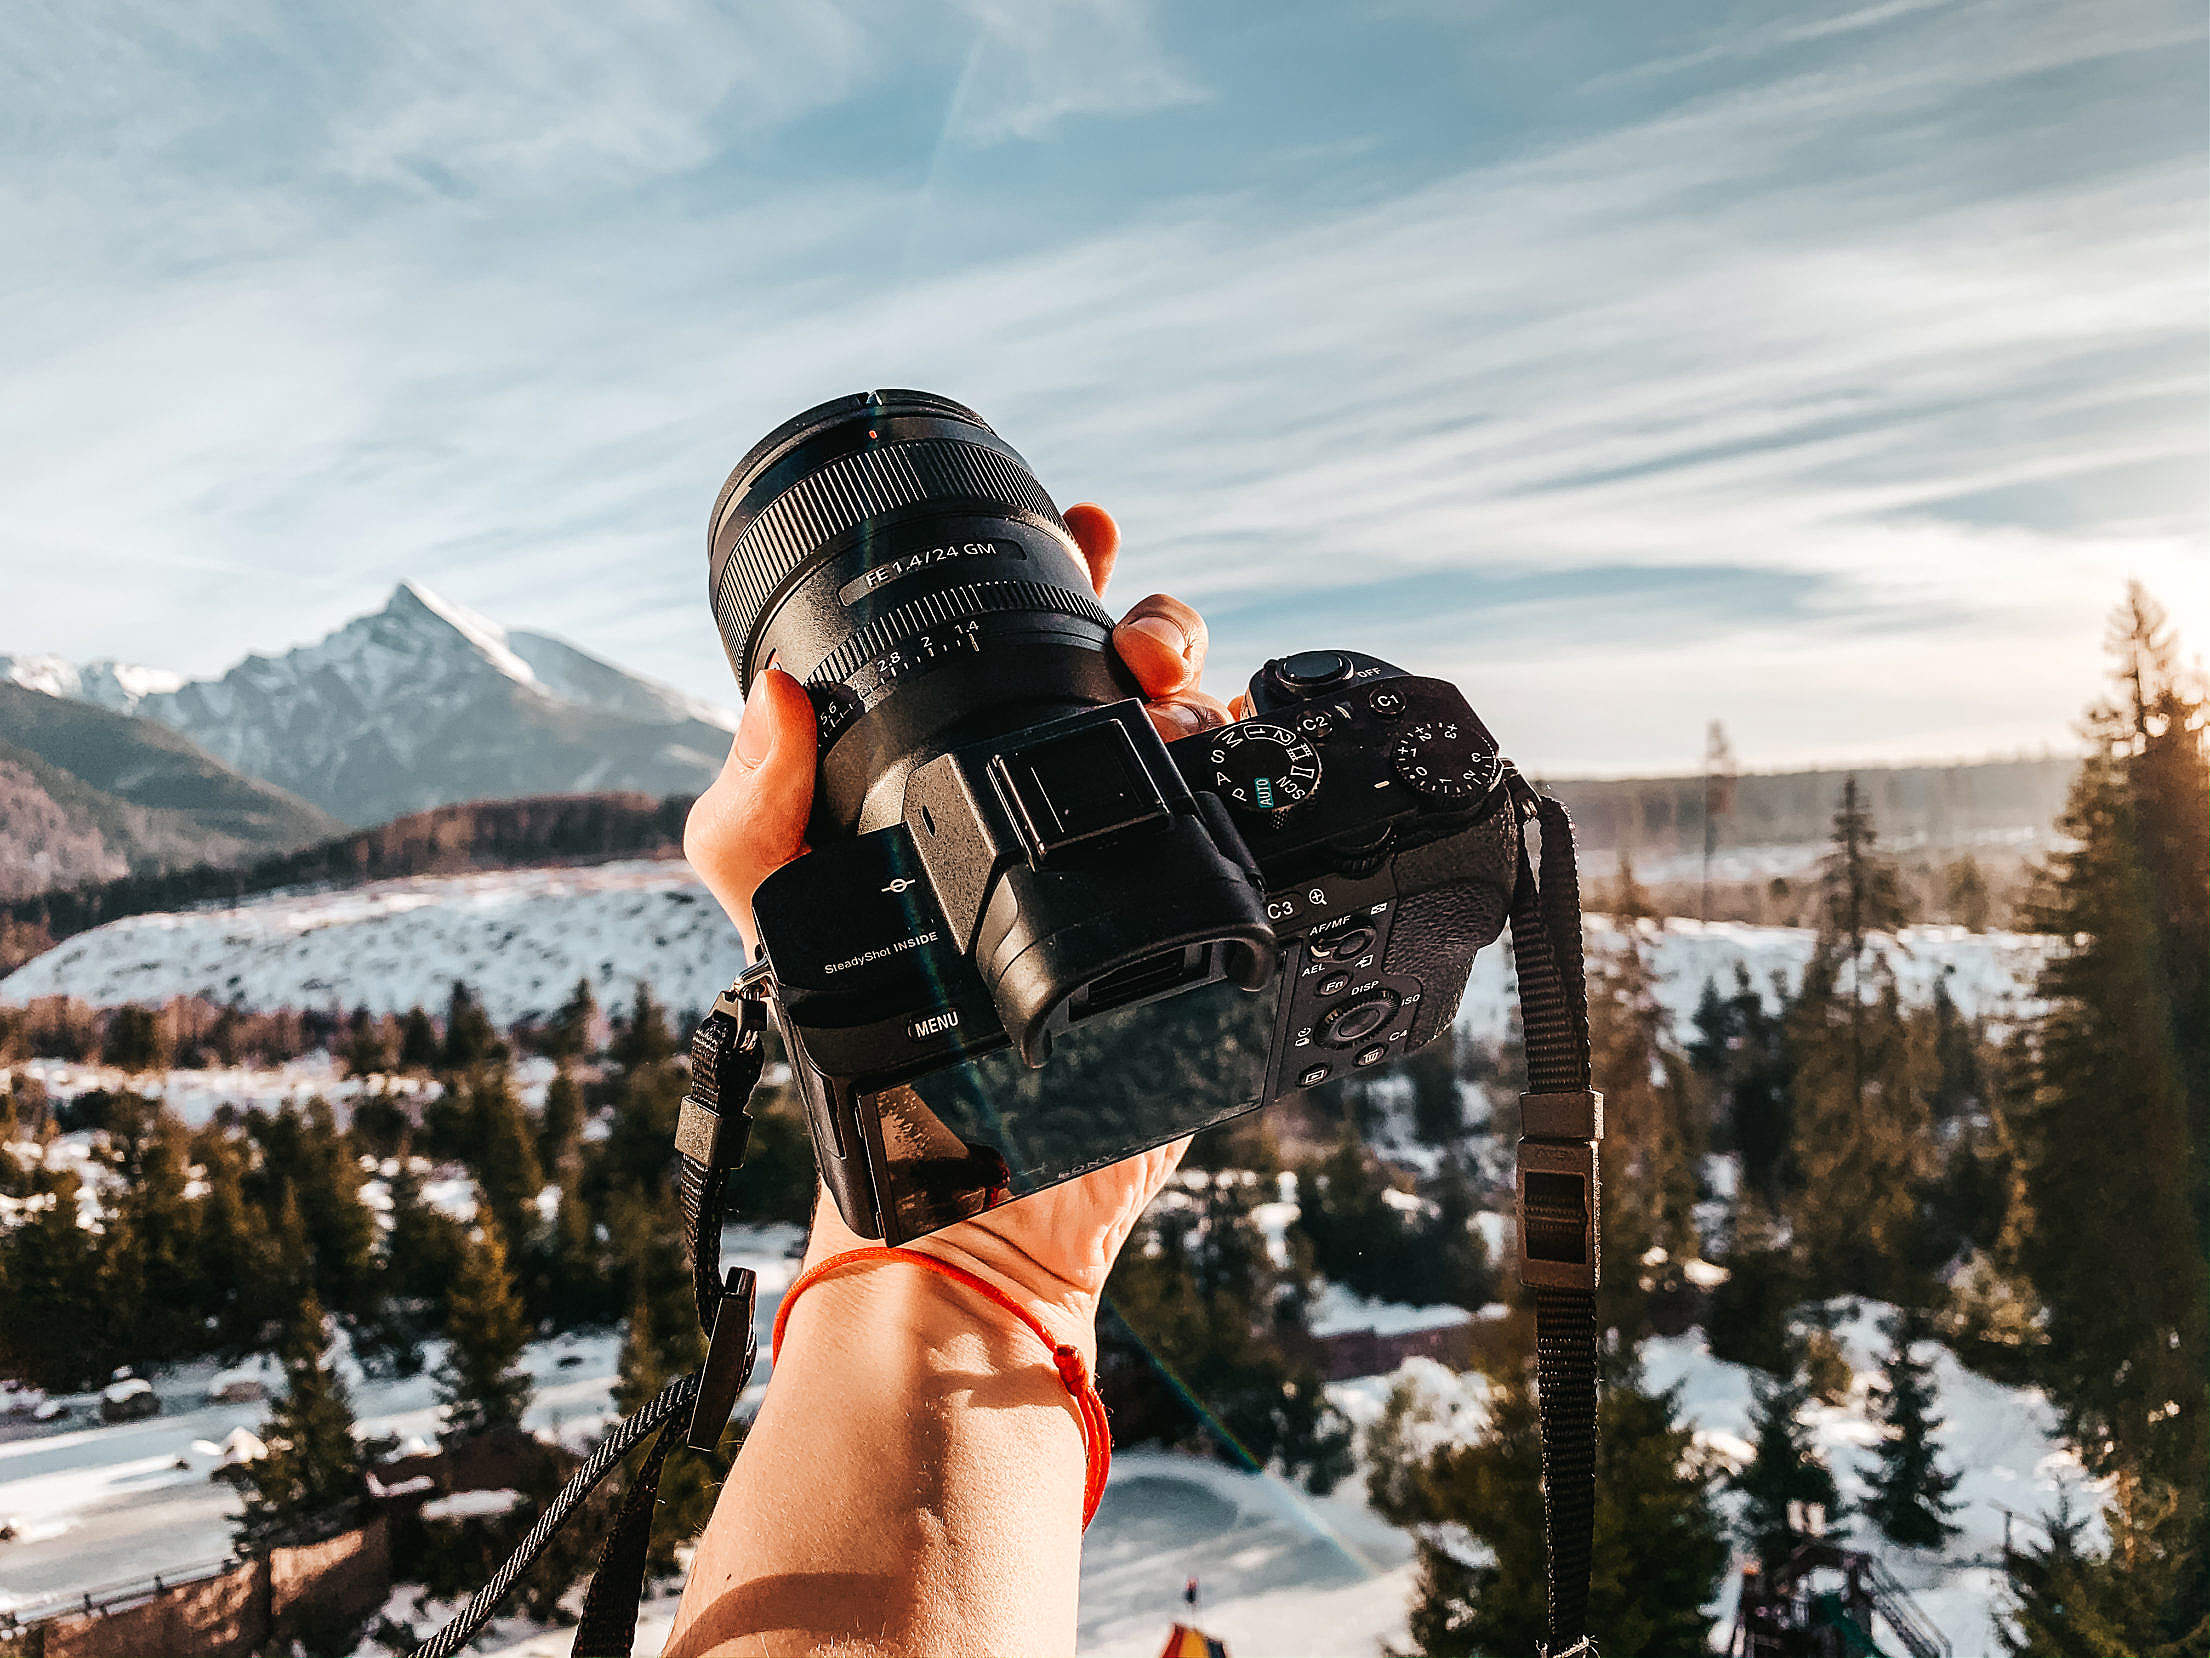 Man Holding a Camera in Mountains Free Stock Photo